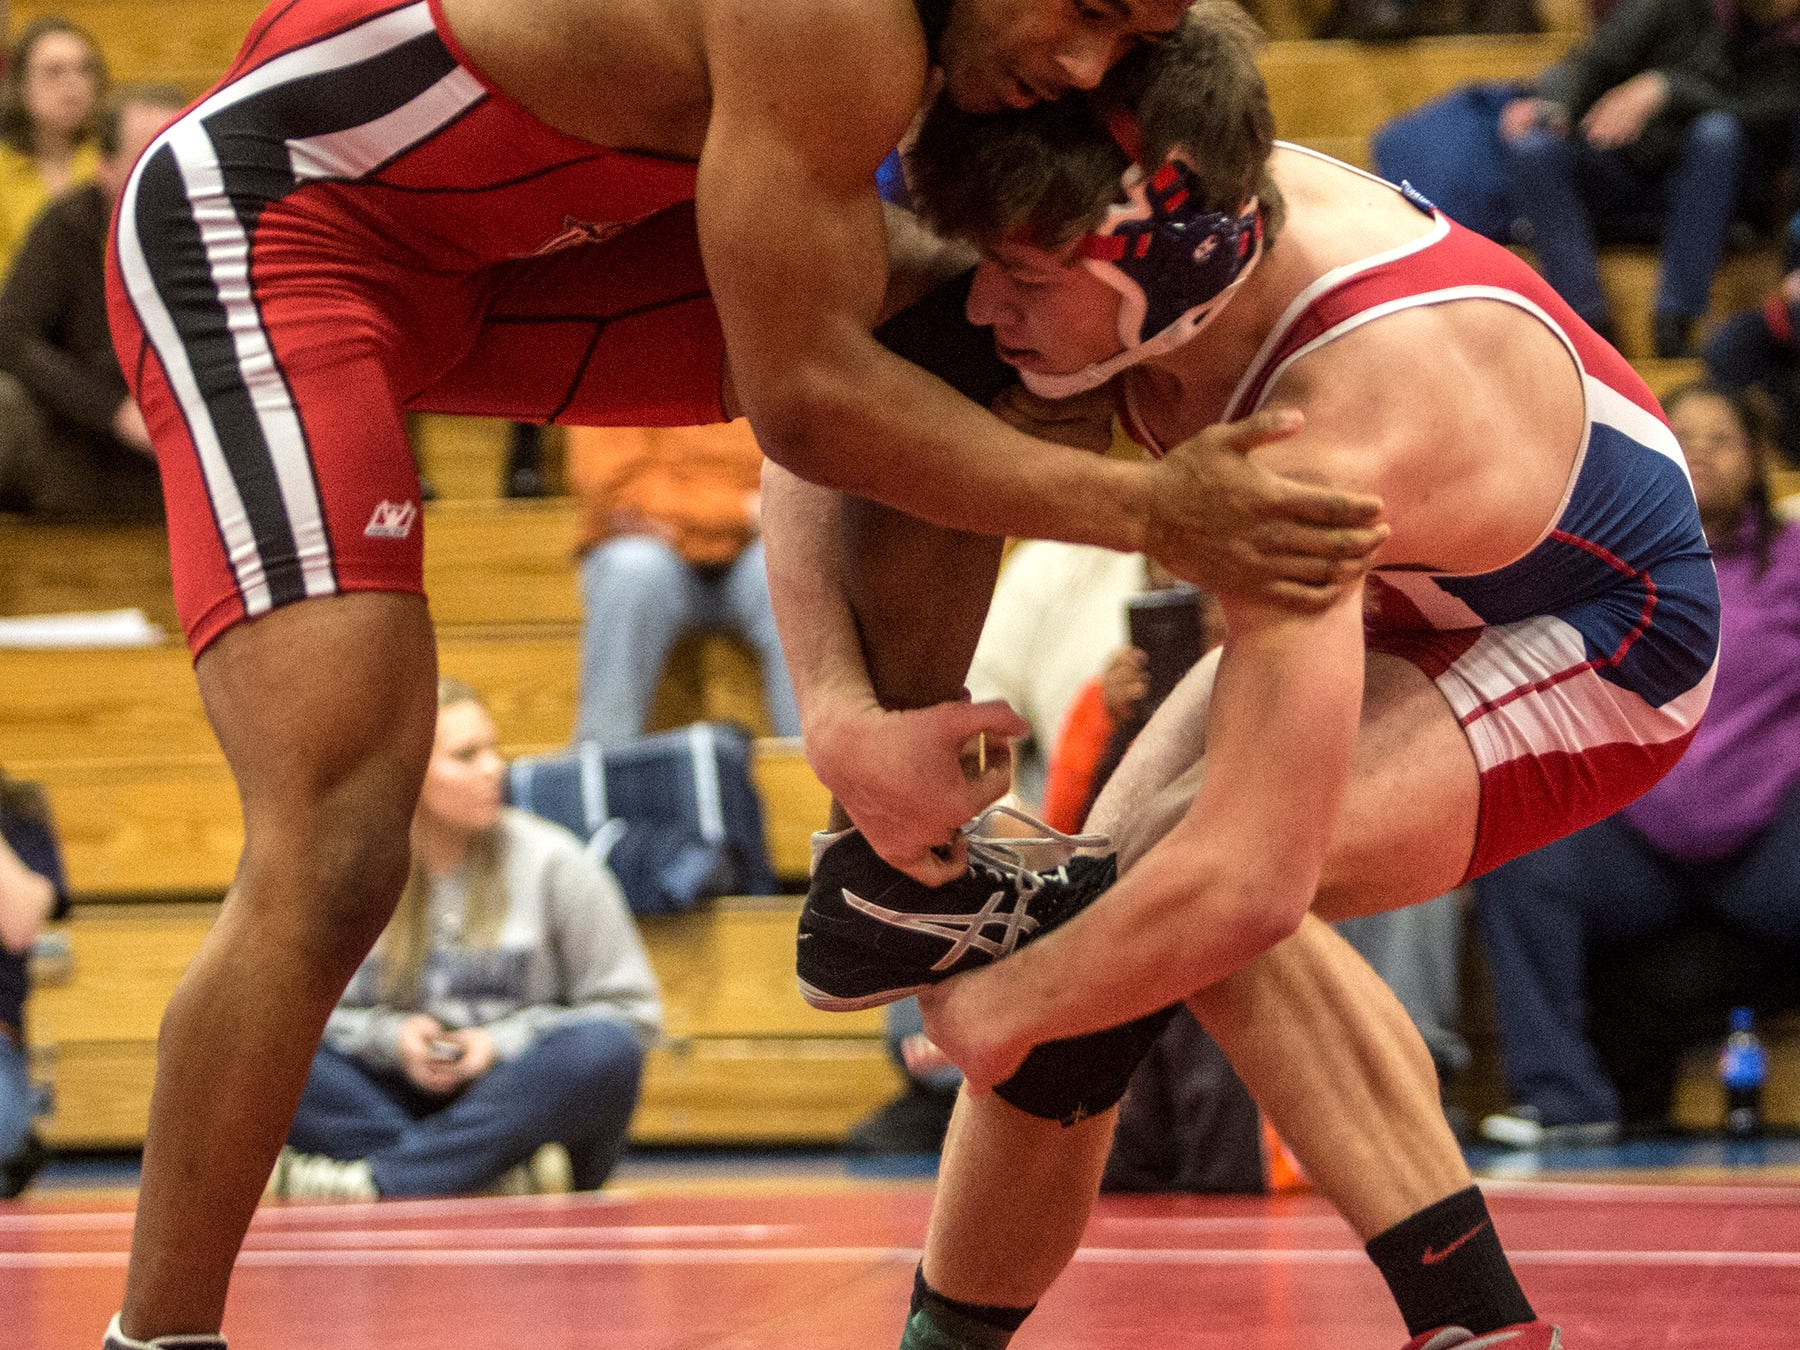 Ethan Fout of Licking Valley won a 3-2 decision against Marion-Franklin's Brandon Fort to win the 160-pound Division II sectional title Saturday on his home mats.